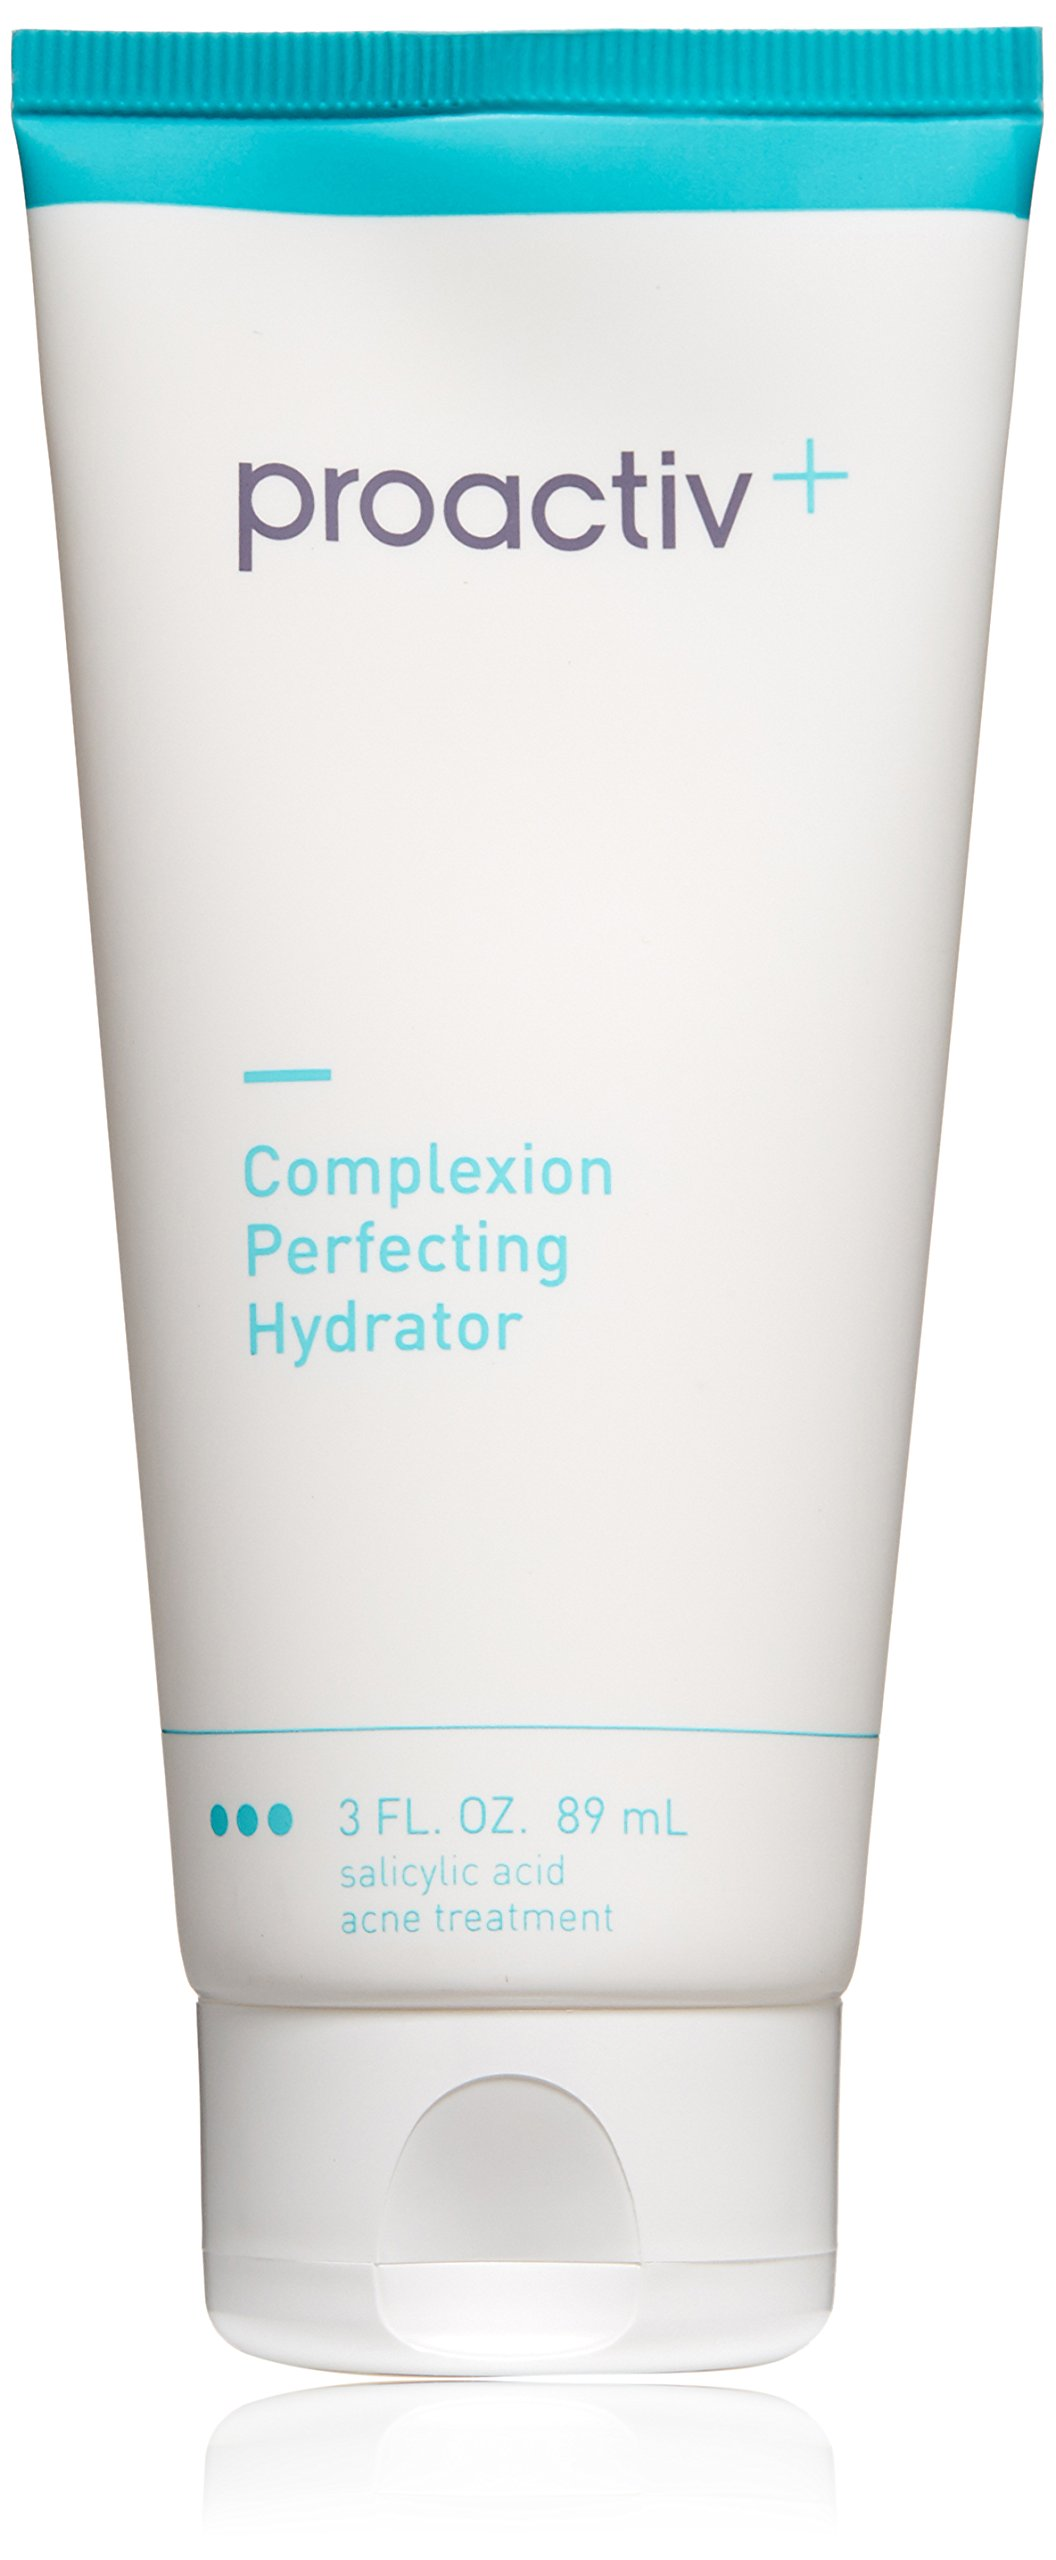 Proactiv+ Complexion Perfecting Hydrator, 3 Ounce (90 Day) by Proactiv